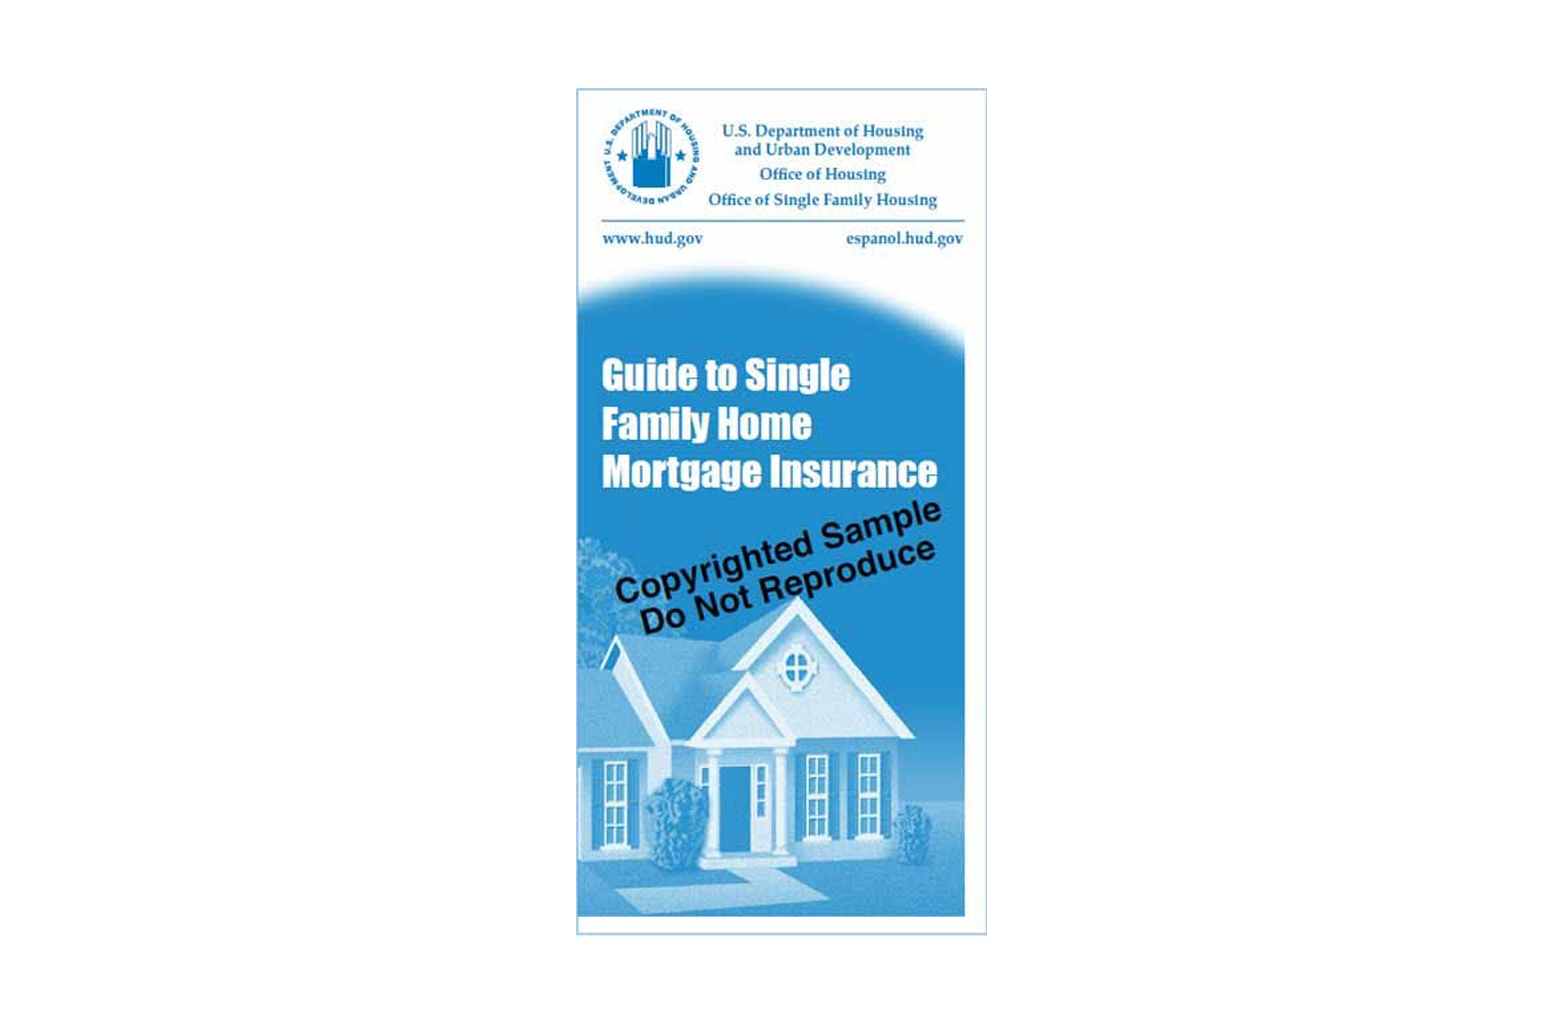 Guide to Single Family Home Mortgage Insurance